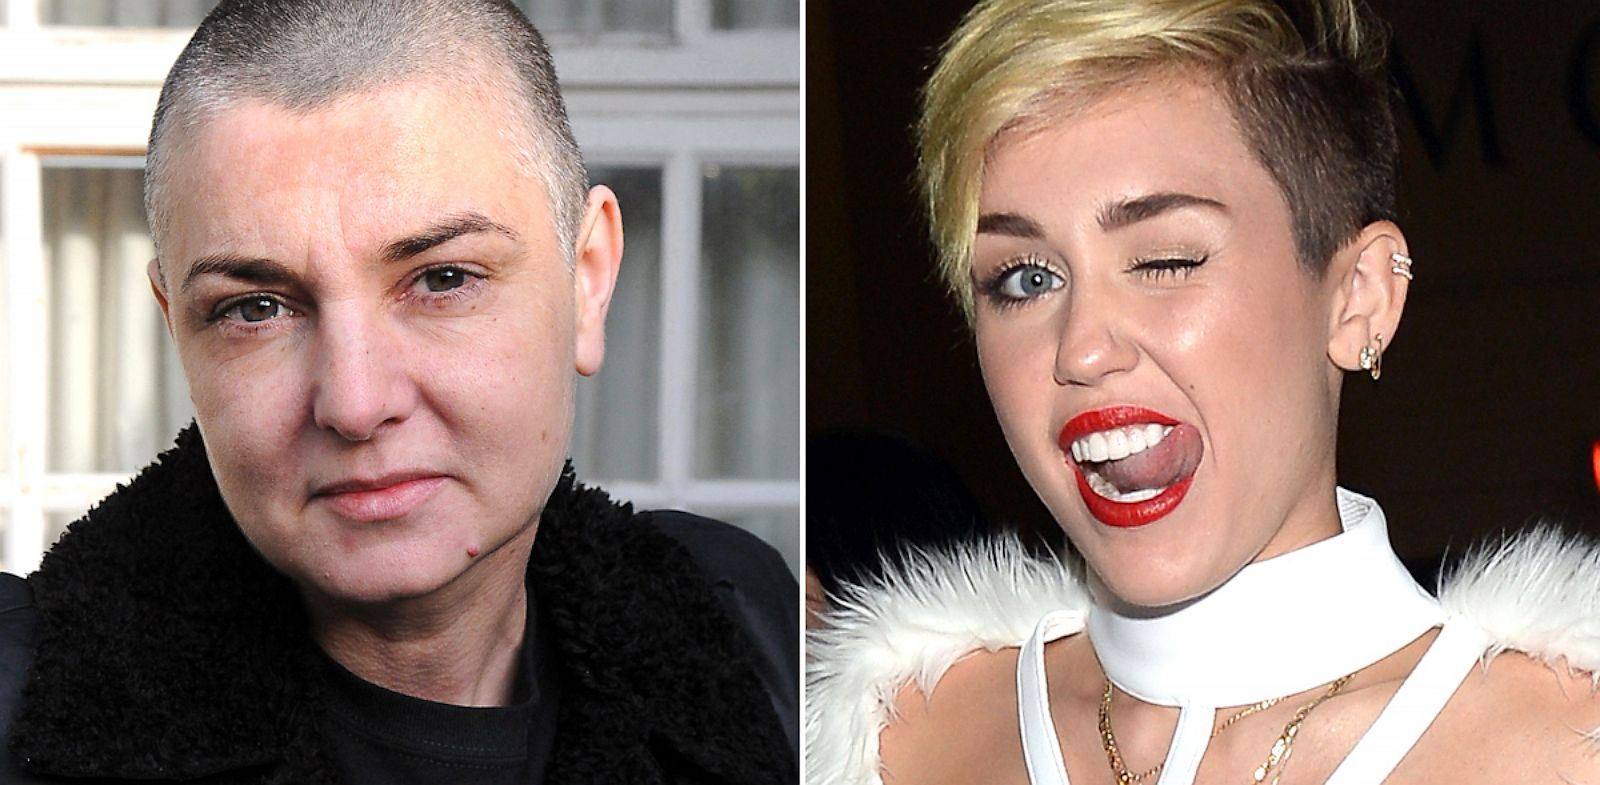 PHOTO: Sinead OConnor and Miley Cyrus